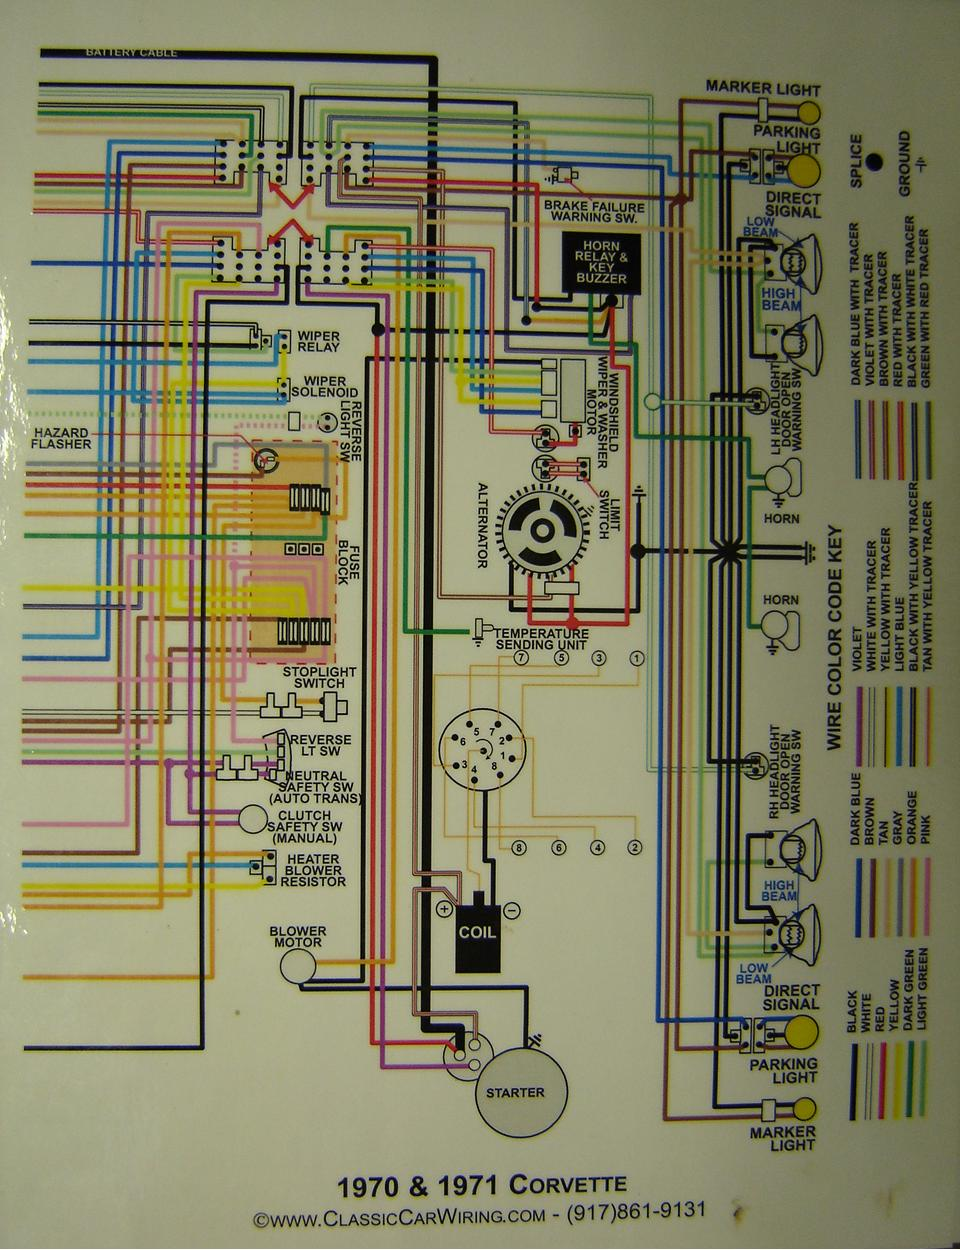 hight resolution of 1970 71 corvette color wiring diagram 2 drawing b